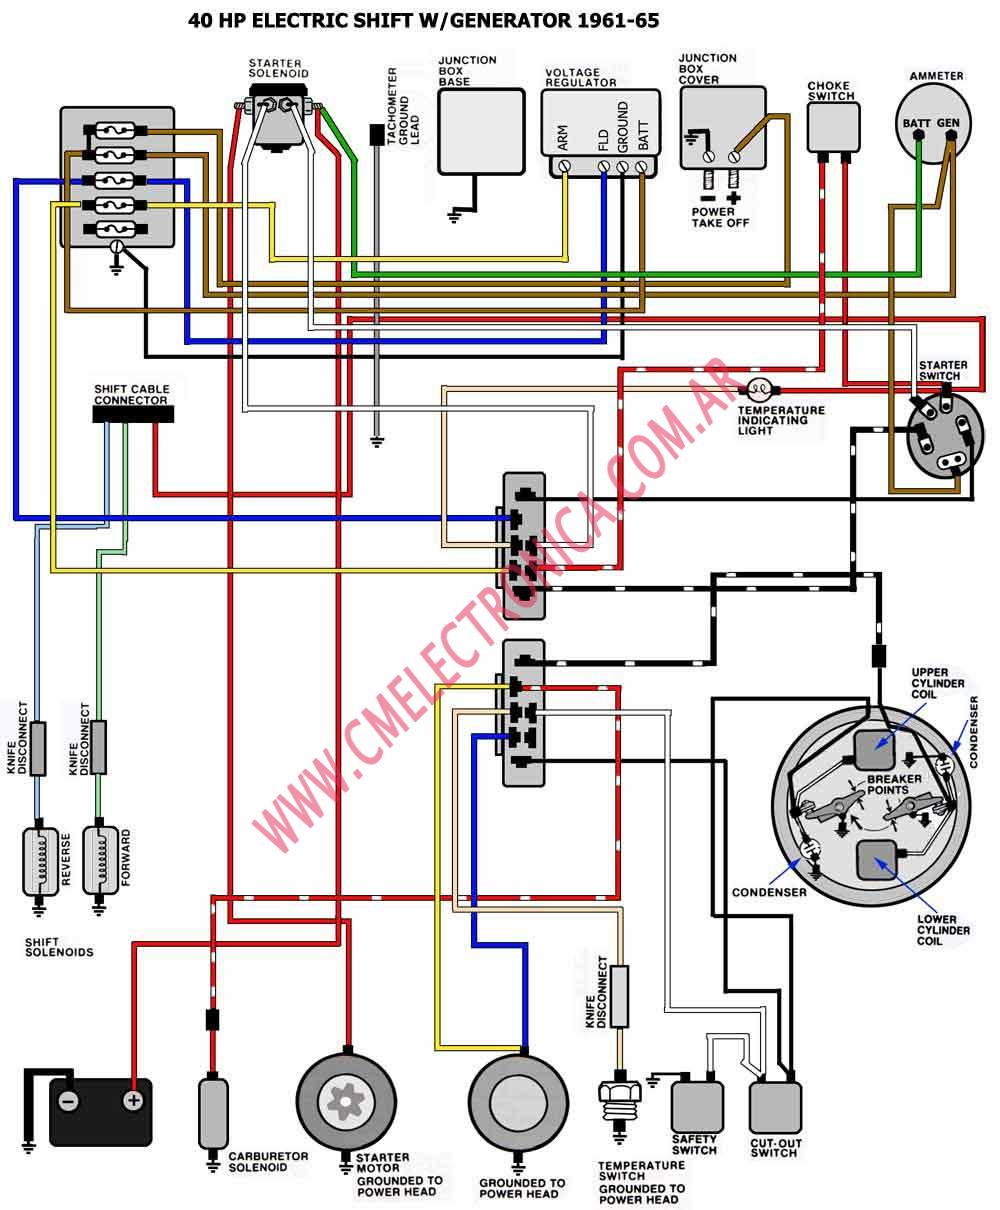 Stingray boat starter switch wiring diagram